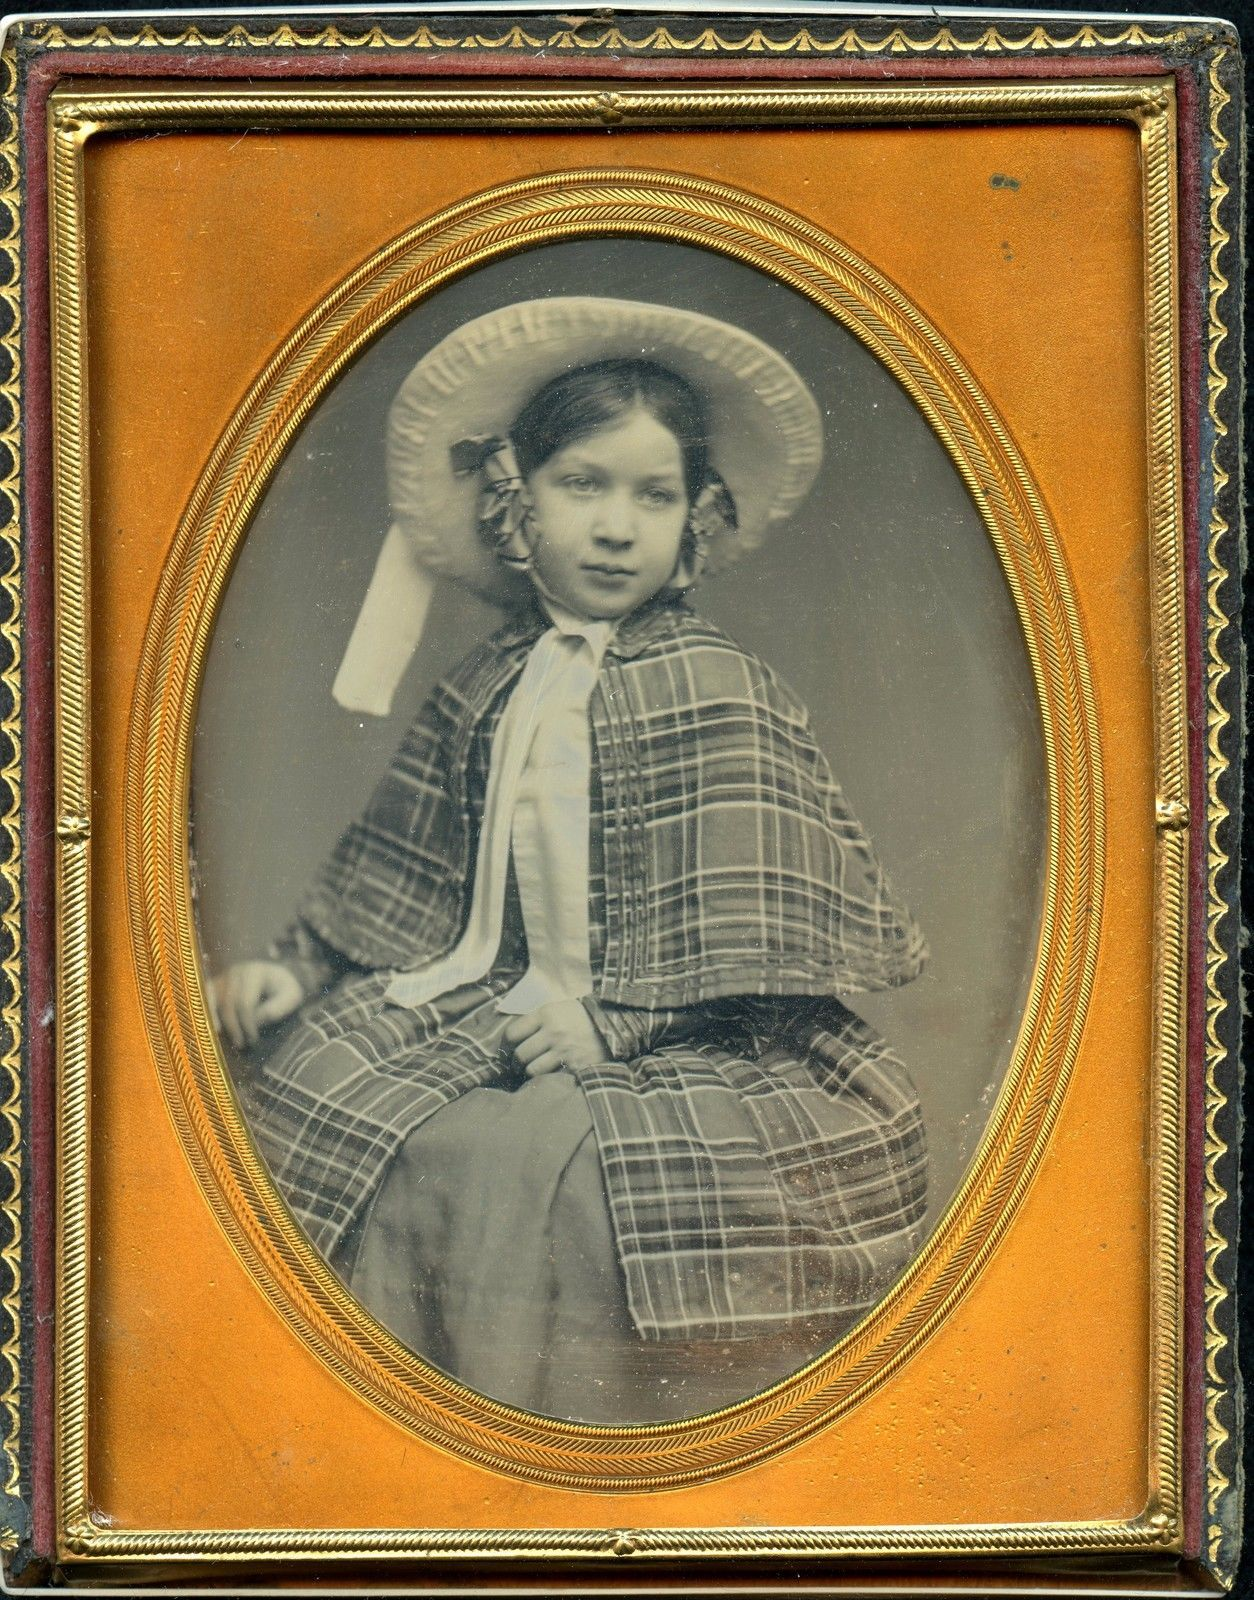 Half plate daguerreotype of young girl w/ wonderful clothing - id'd prominent